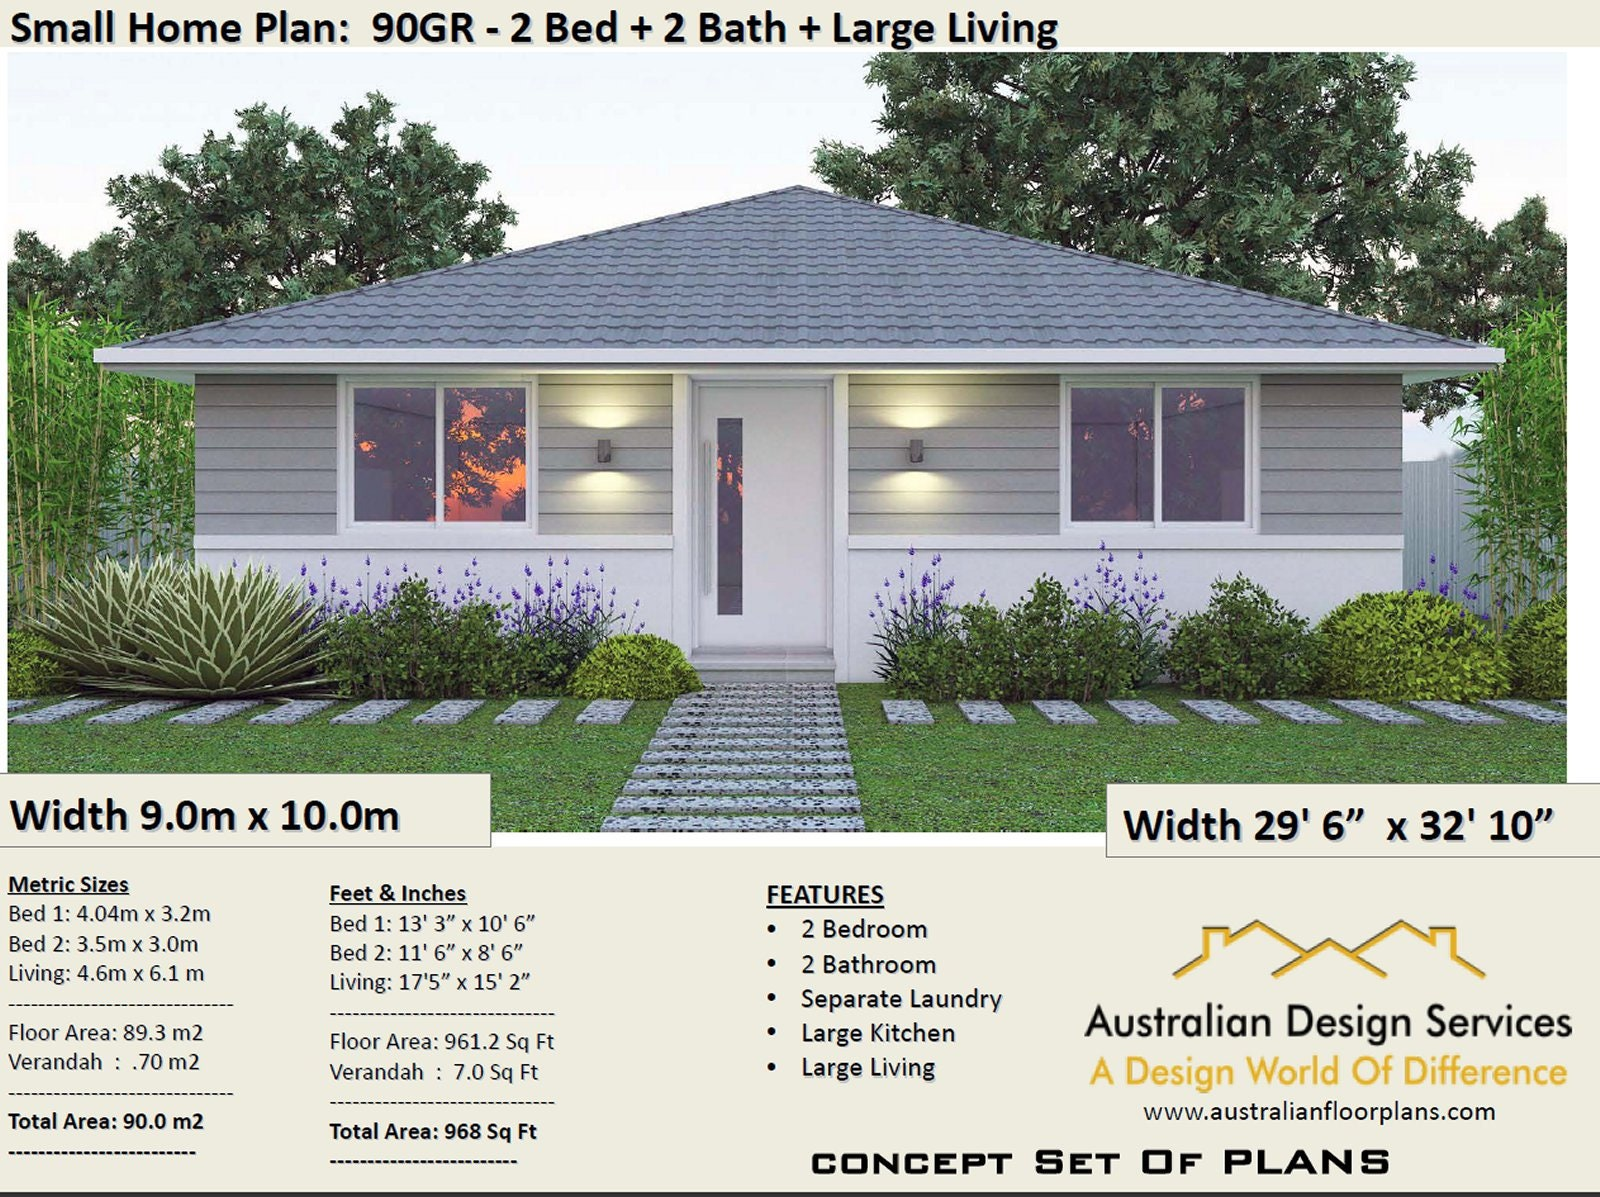 2 Bedroom House Plan 968 Sq Feet Or 90 M2 2 Small Home